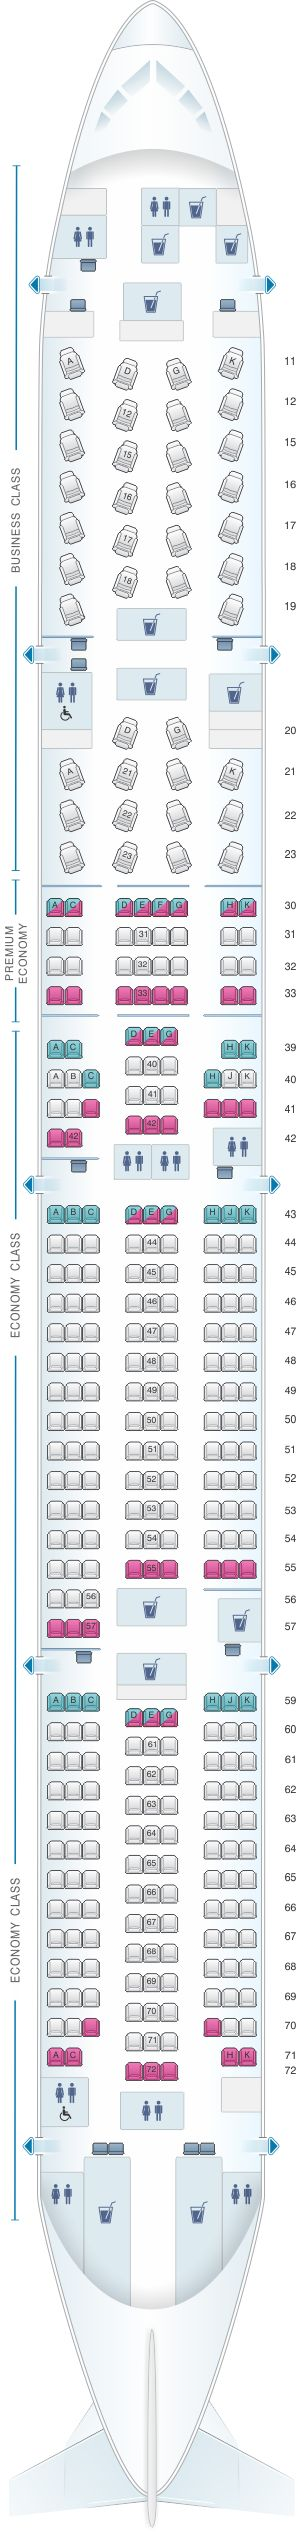 Seat Map Cathay Pacific Airways Boeing B777 300ER (77G)